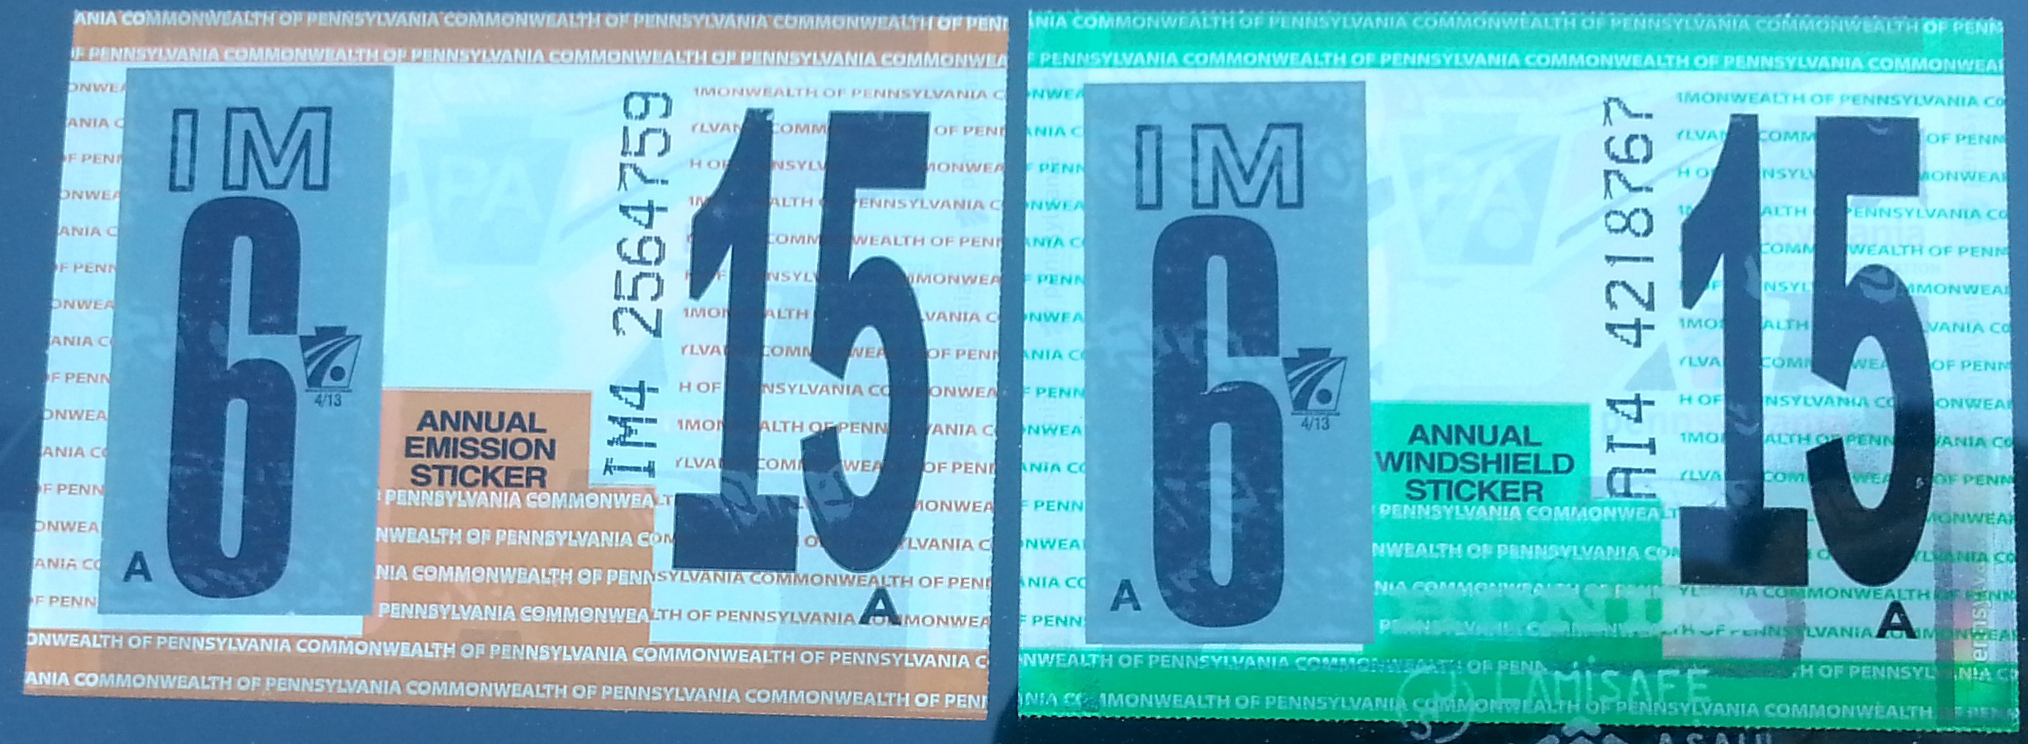 Car sticker inspection - 2014 2015 Cycle